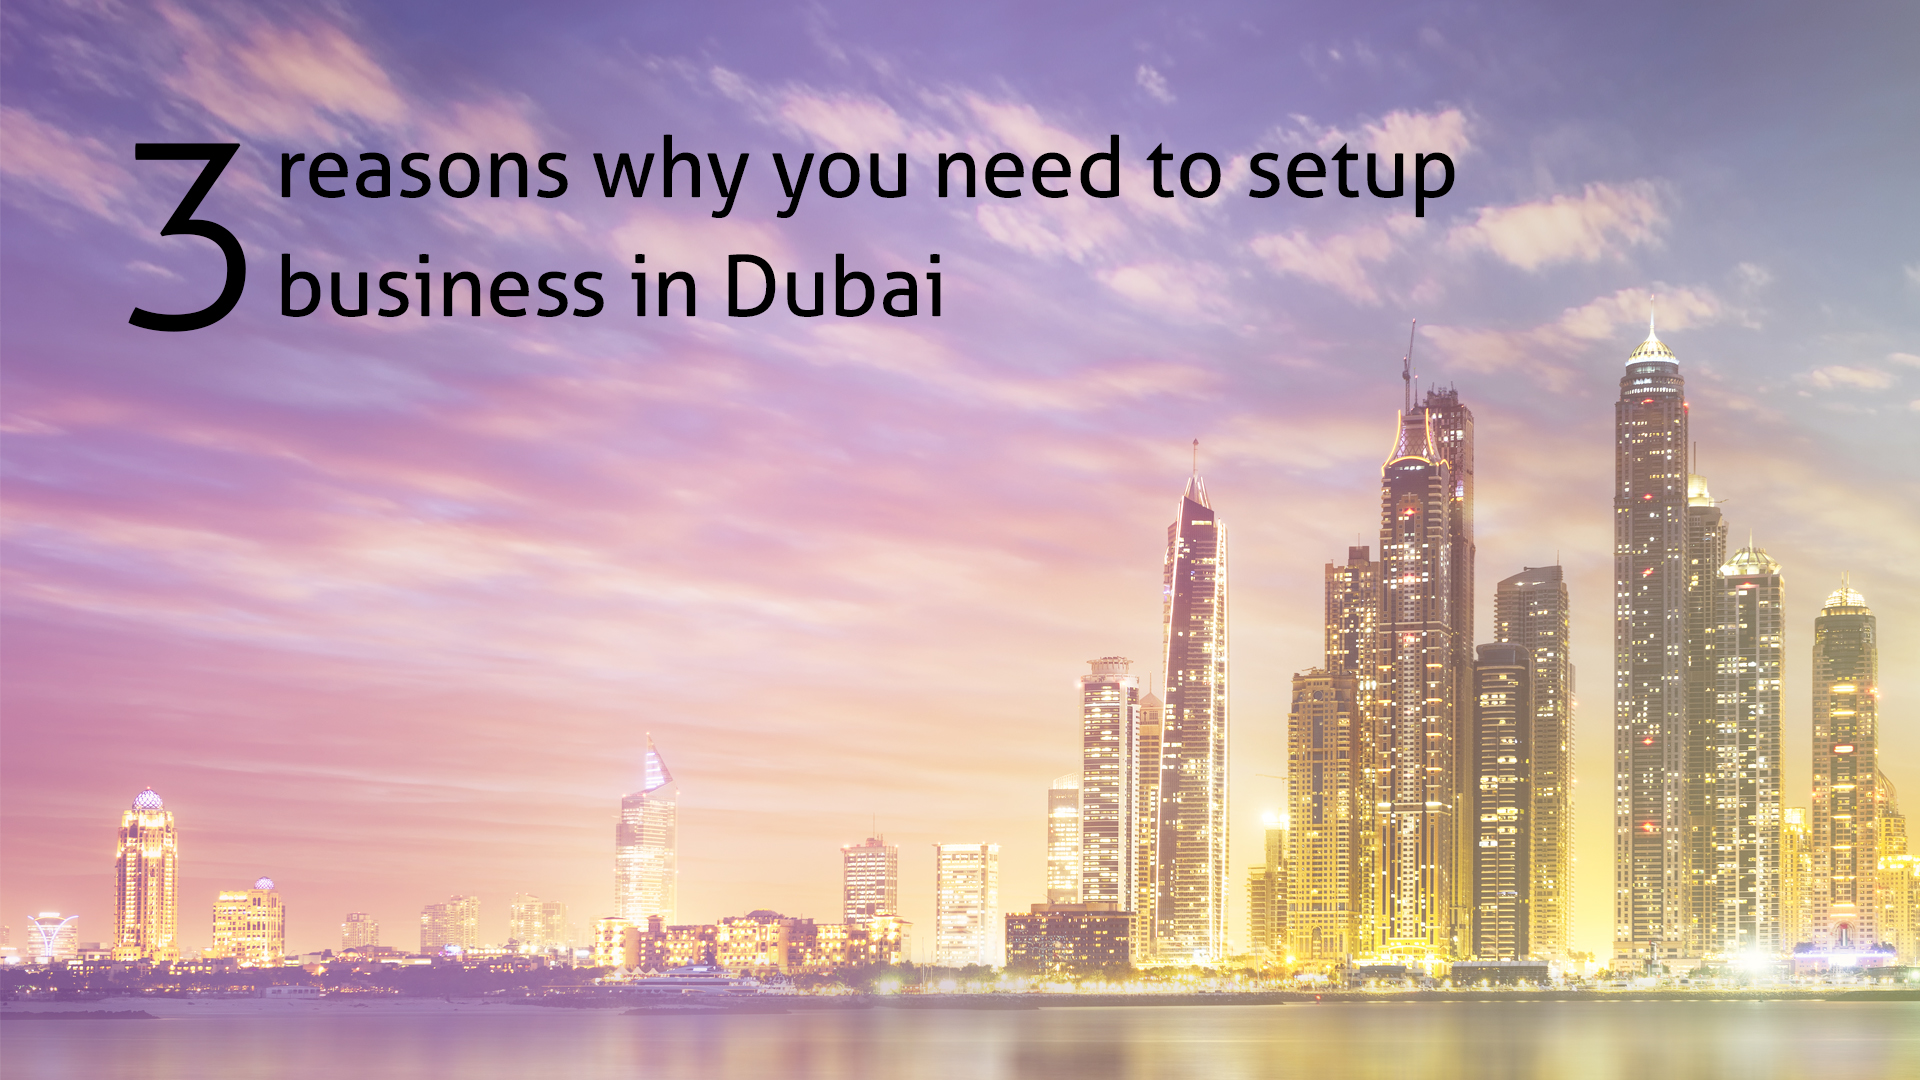 3 reasons why you need to setup a business in Dubai